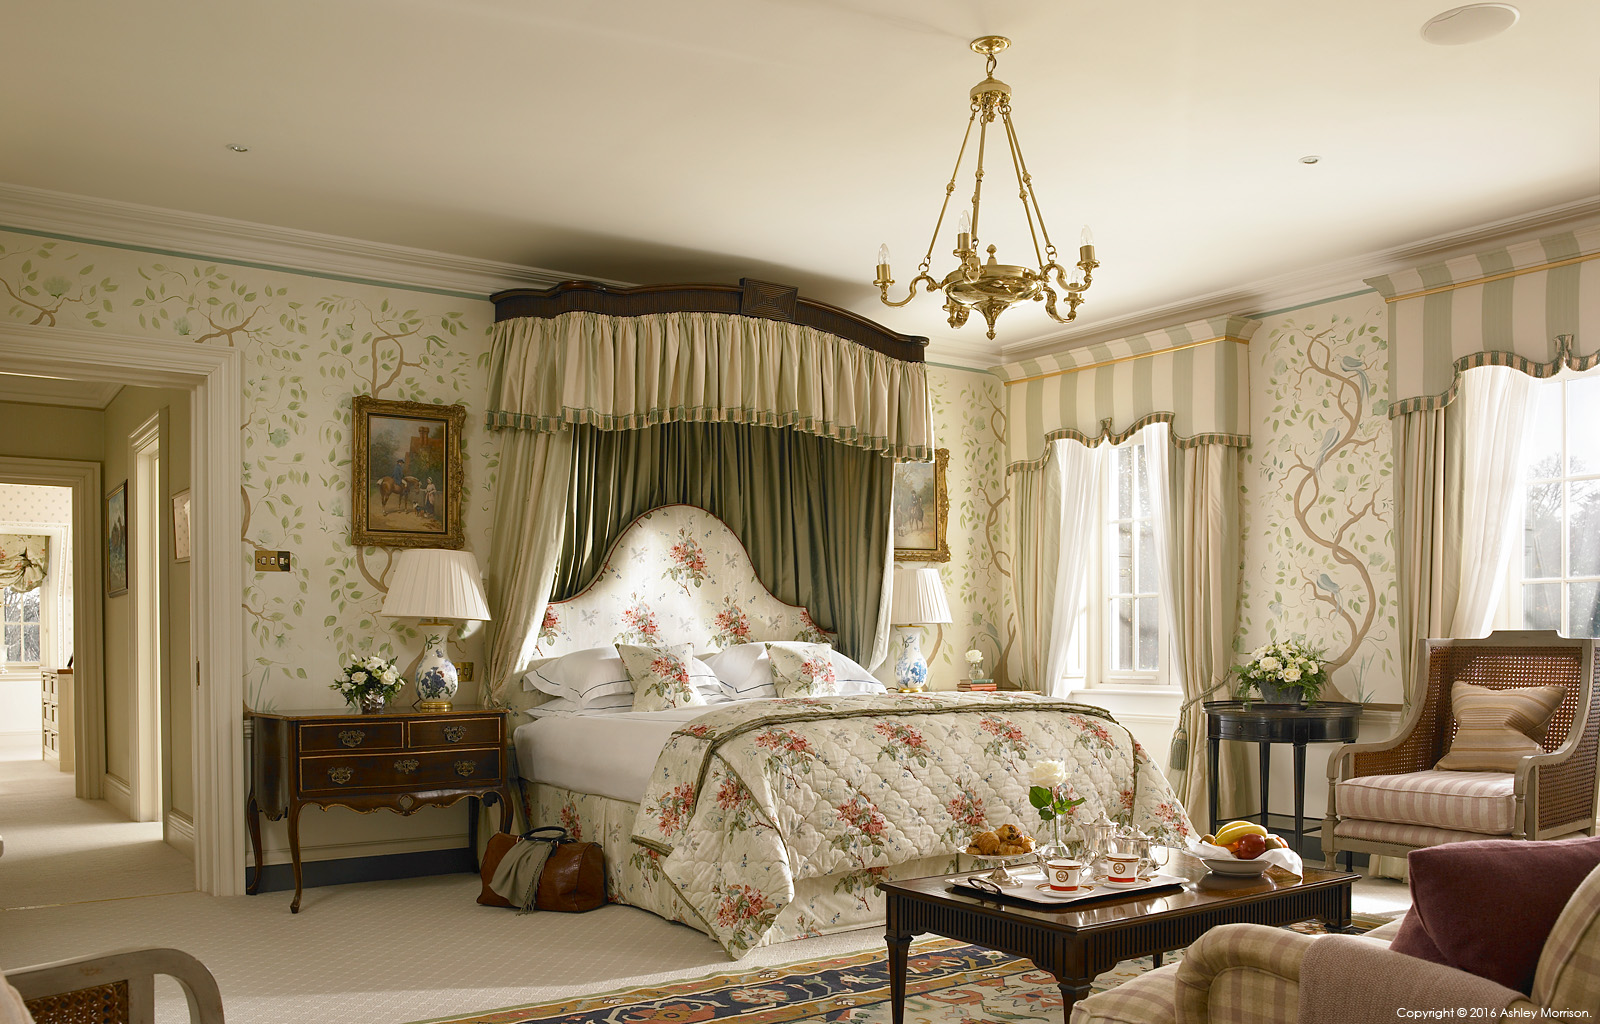 The master bedroom in Straffan House at The K Club in County Kildare.